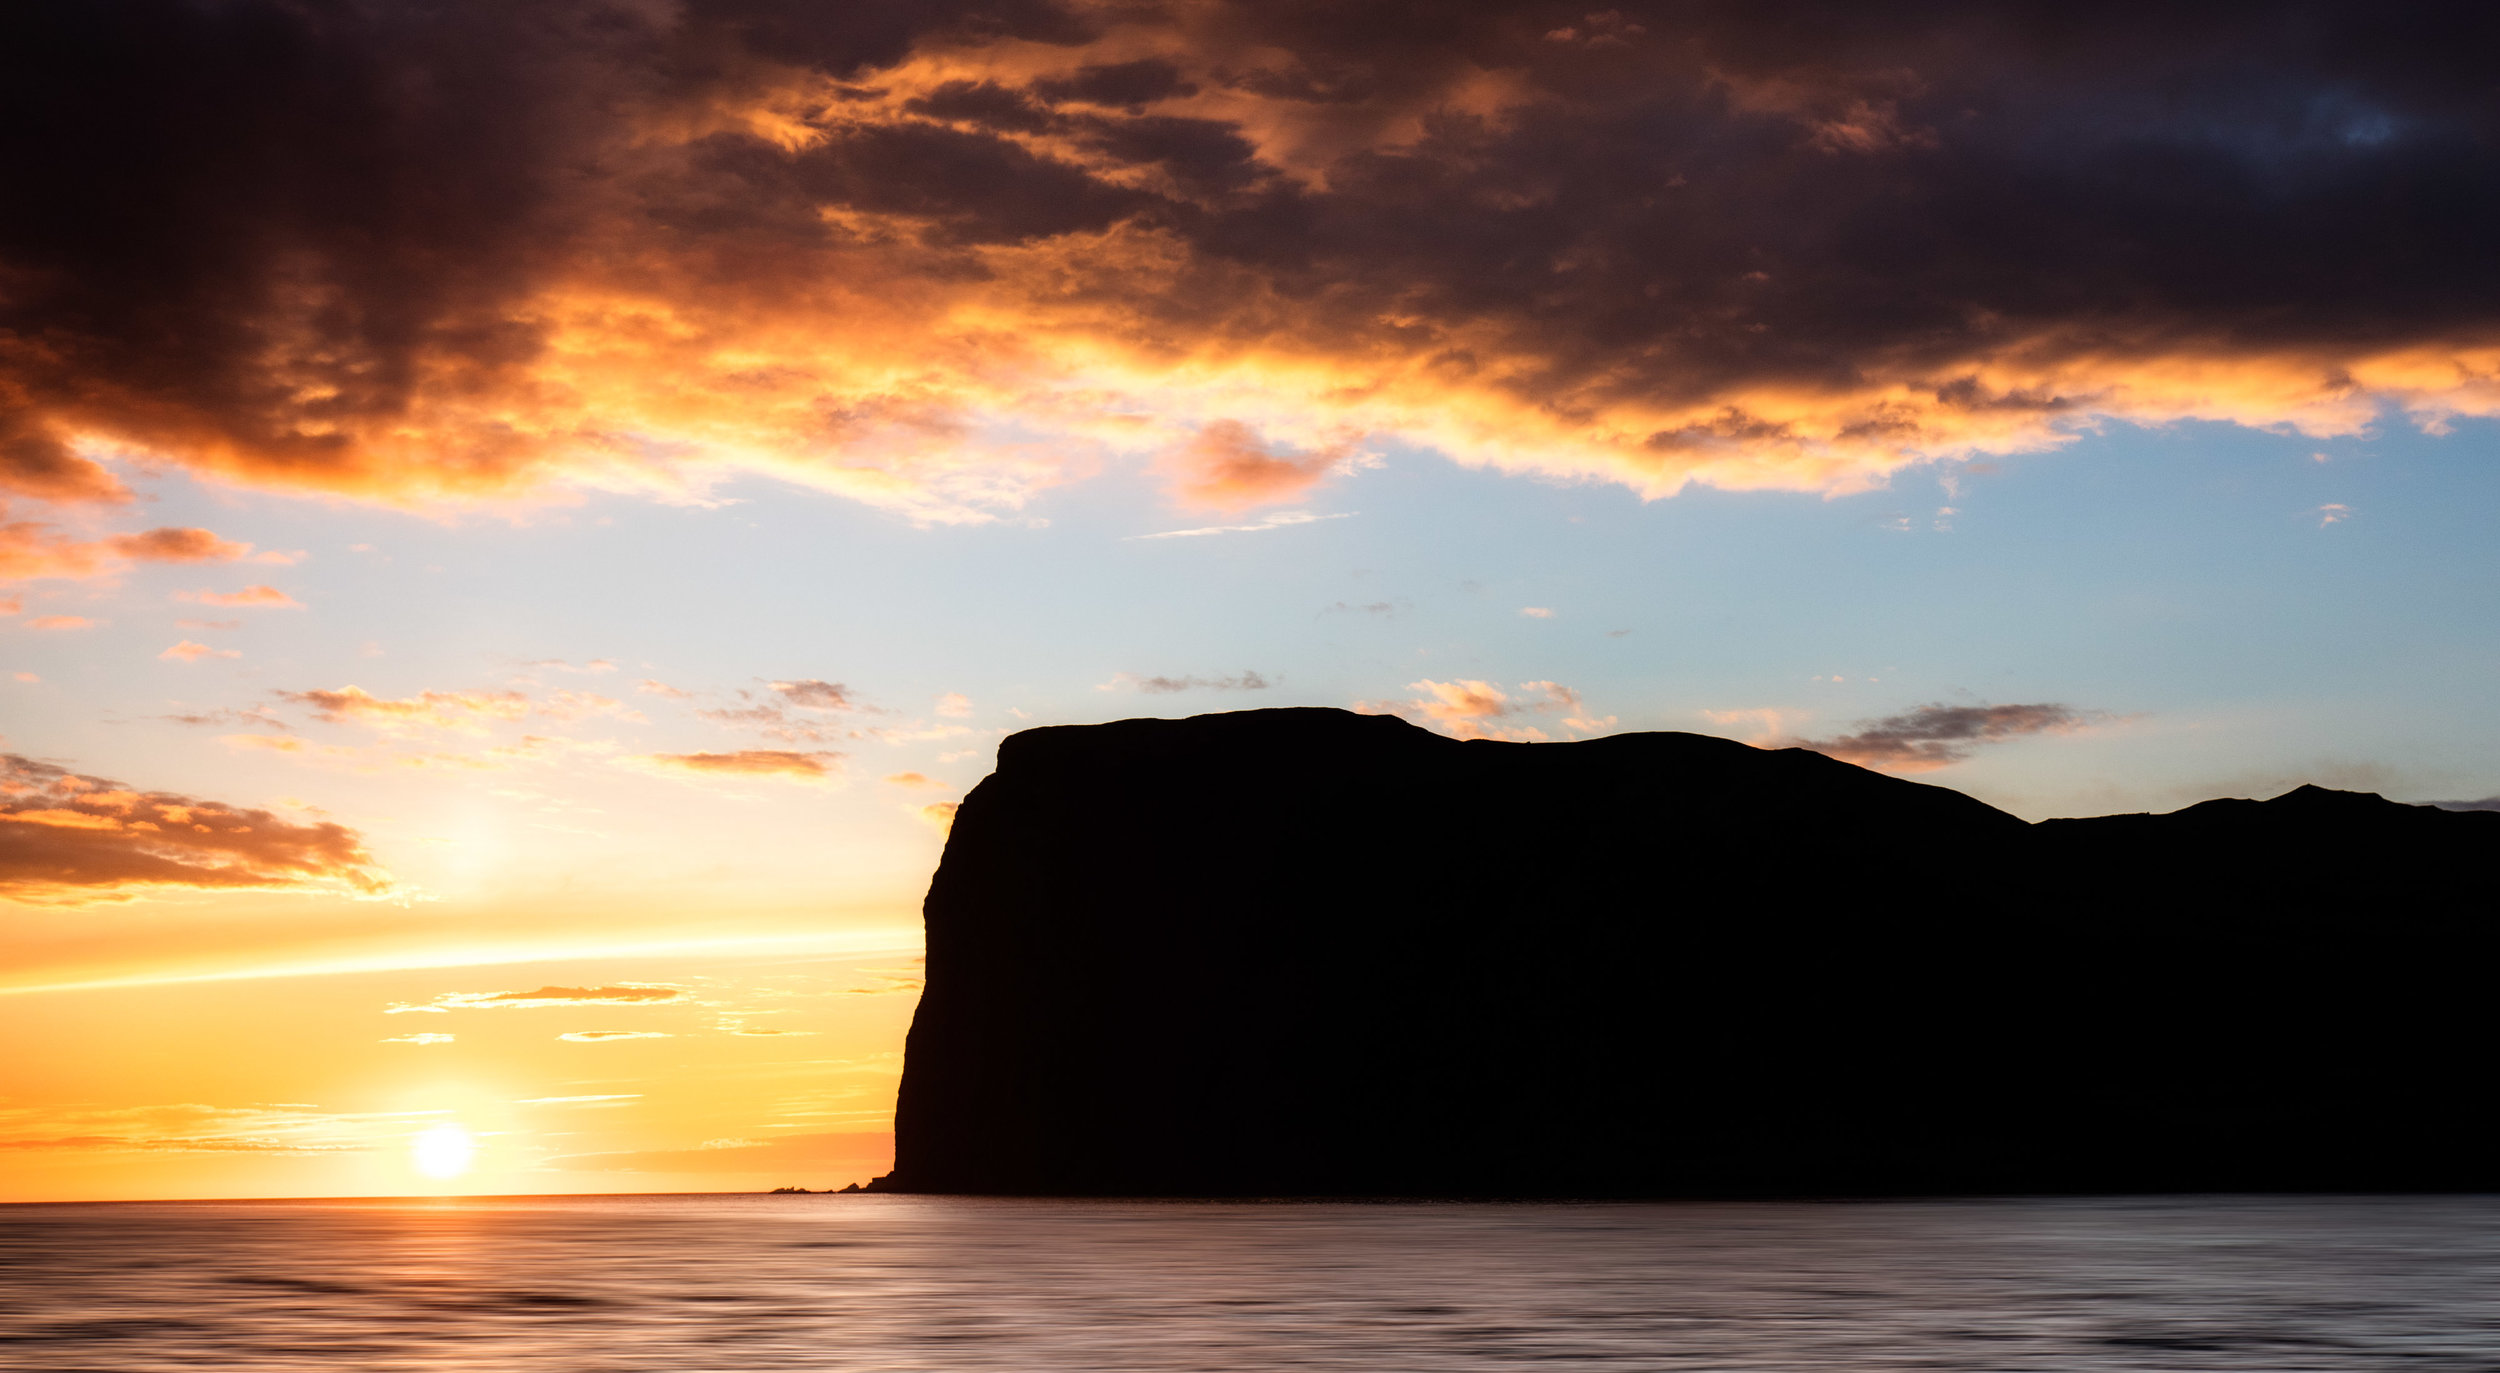 Our expedition has finished. See how it all went on  Steller   Join us on an expedition to the land of the midnight sun! Travel with two experienced photographic educators and a local guide to discover Iceland off the beaten path.